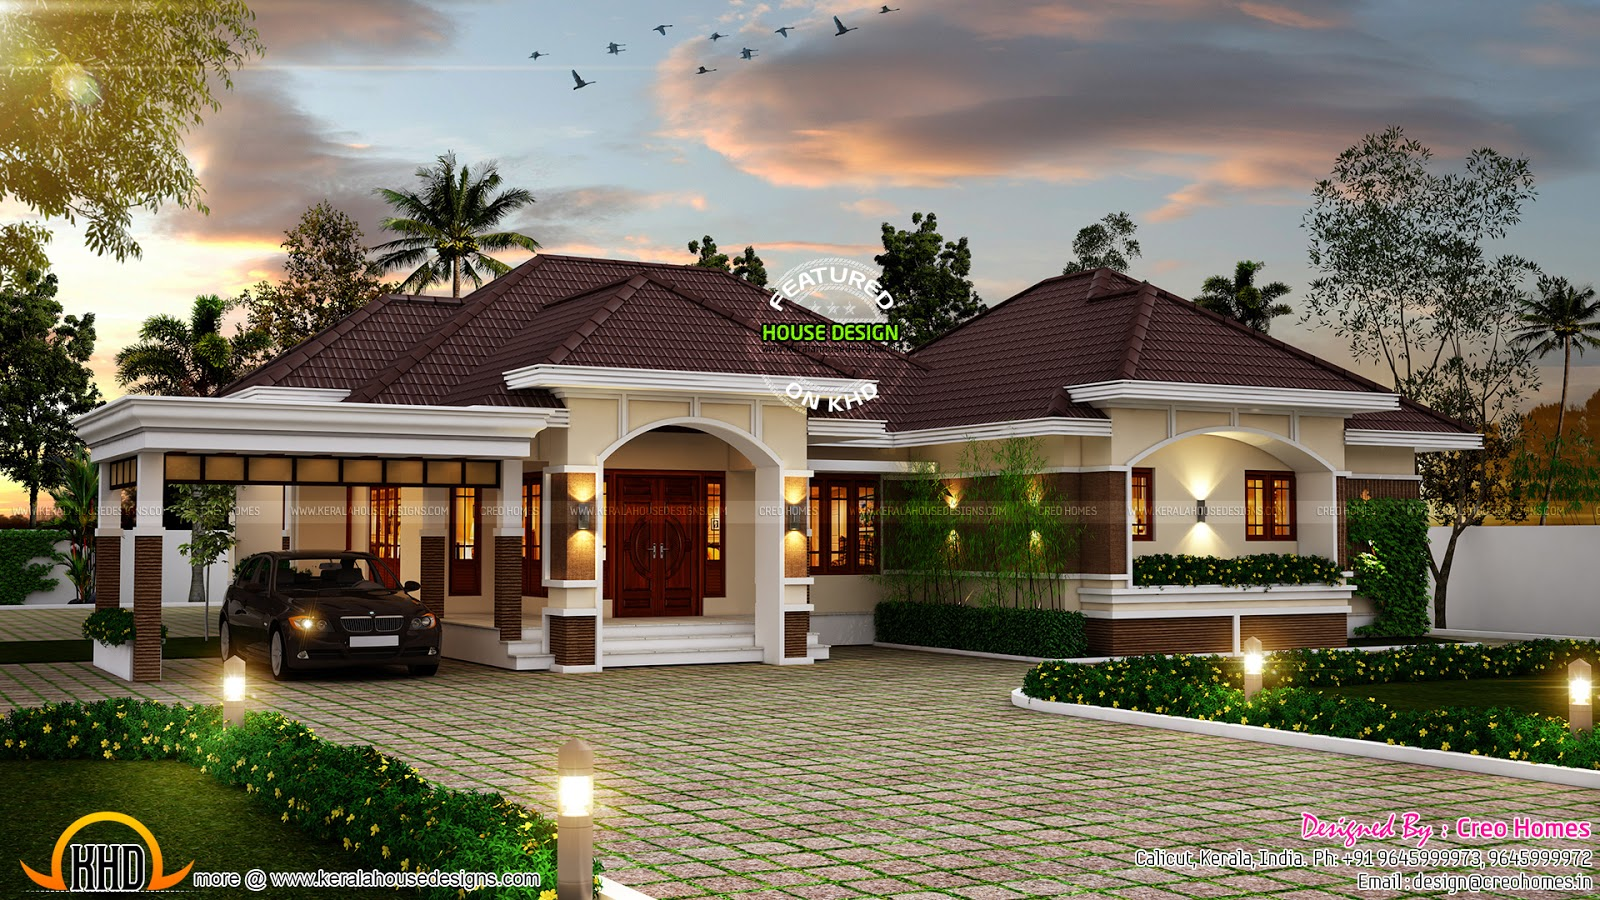 Outstanding bungalow in kerala kerala home design and for Kerala home plans